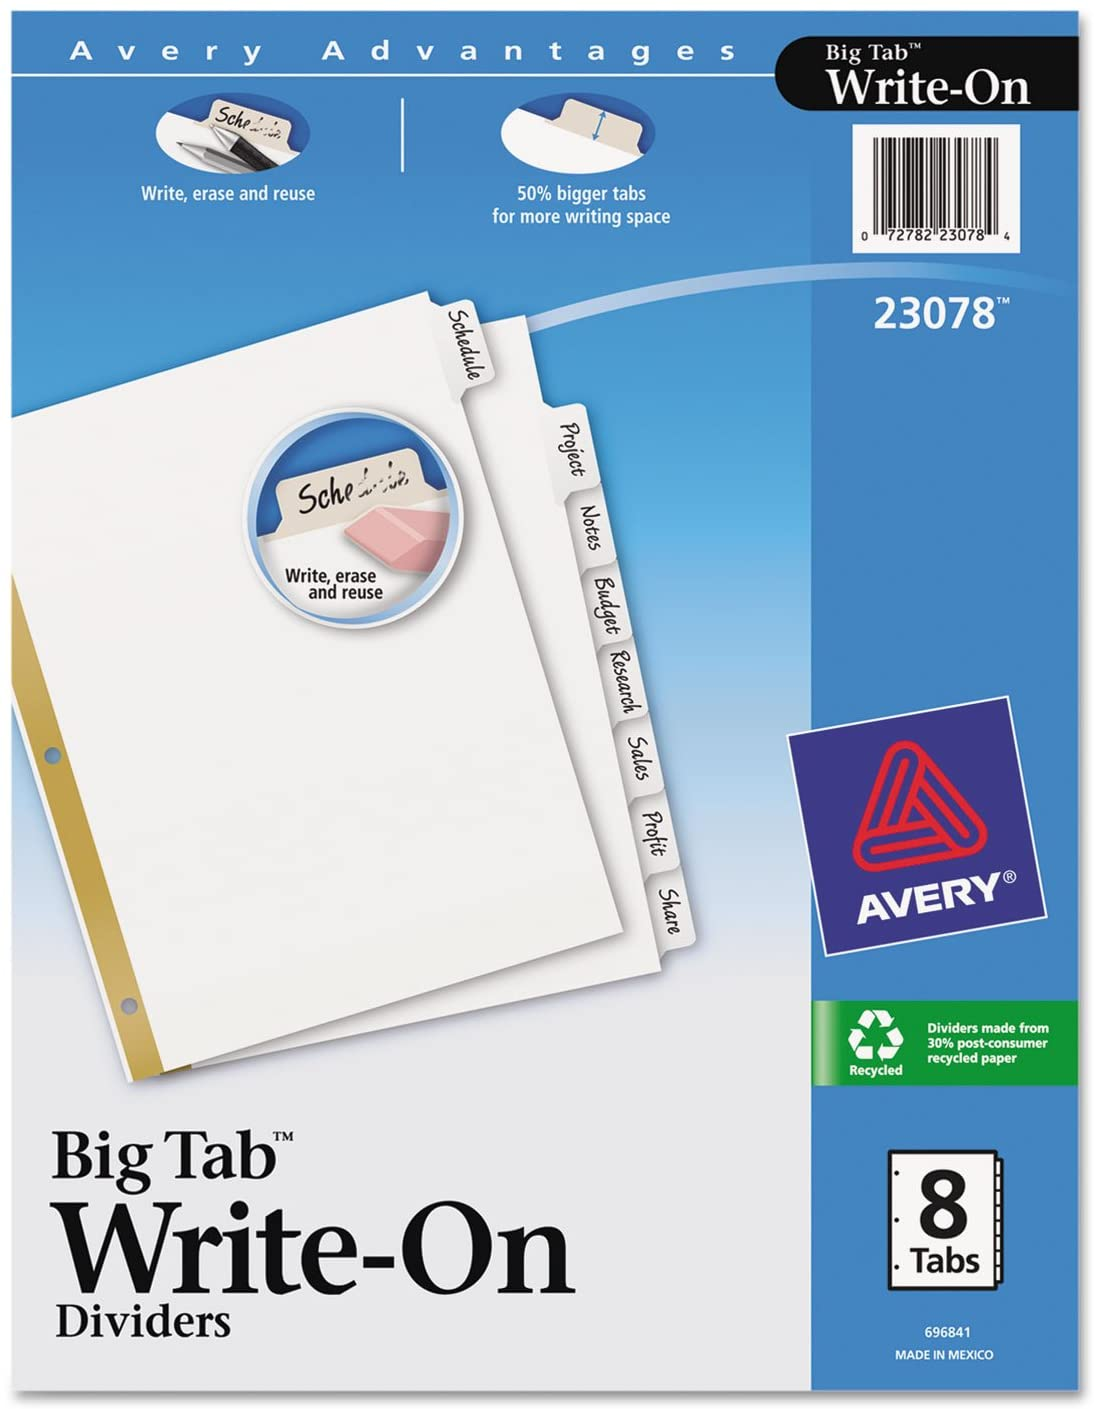 Big Tab Write-On Dividers